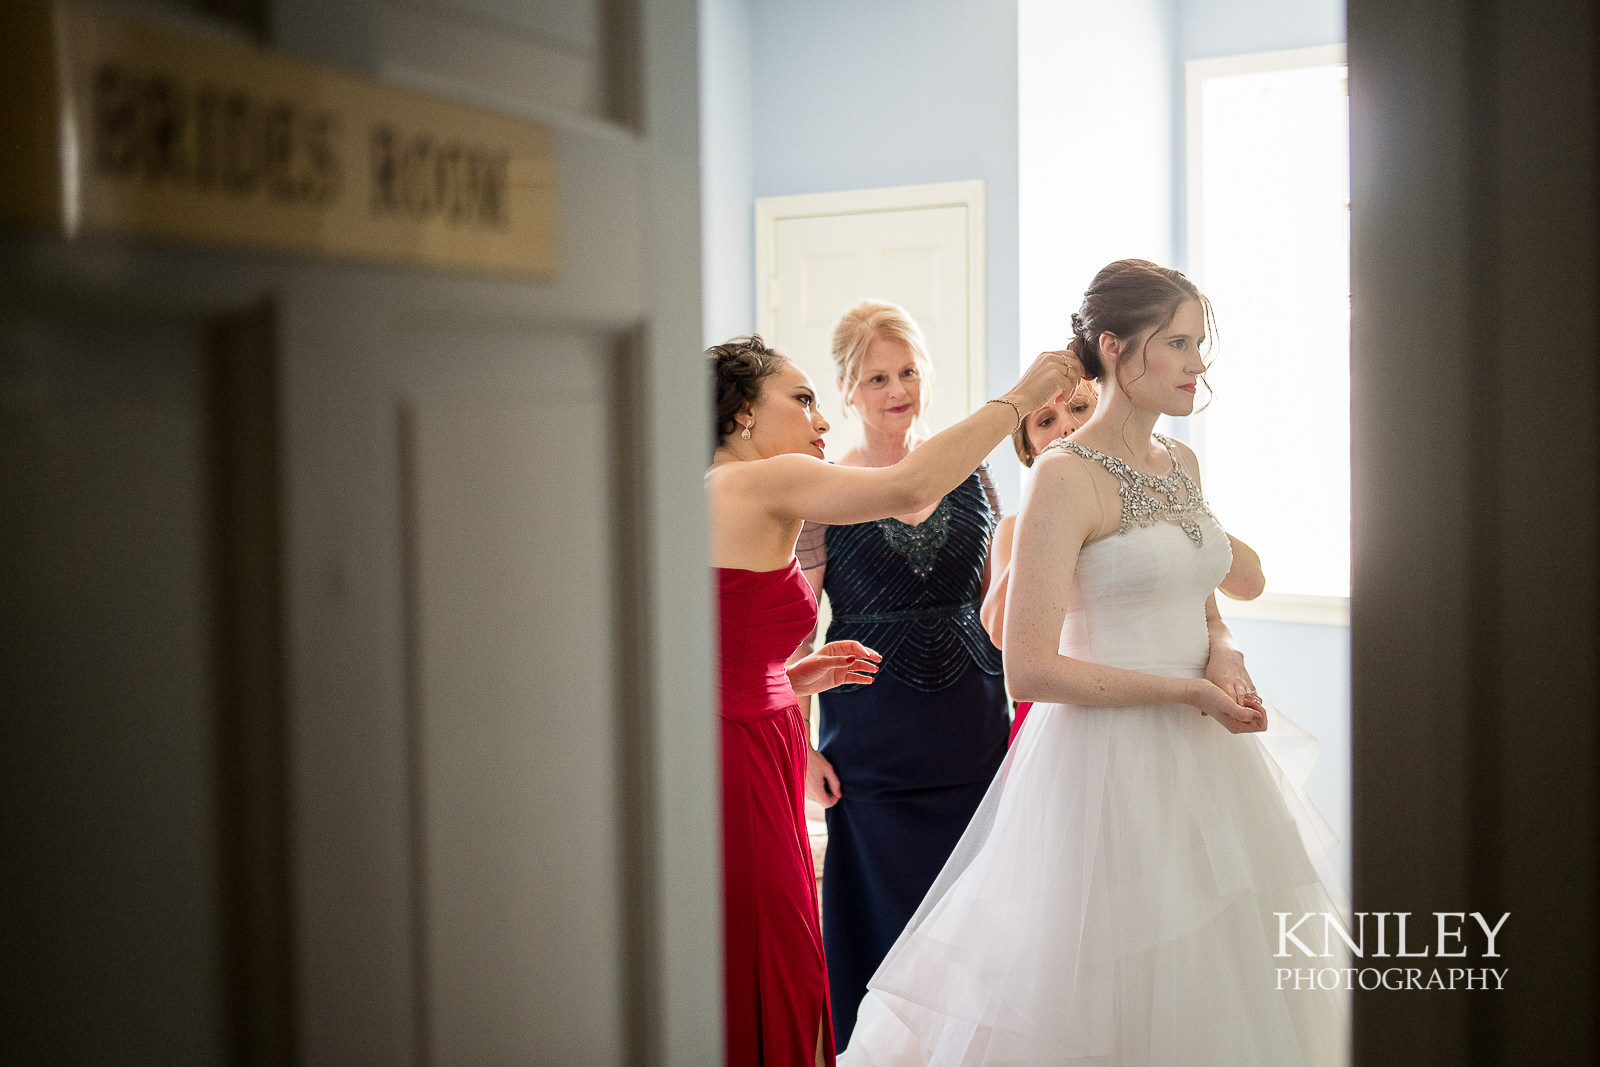 028 - Rochester NY wedding pictures - Genesee Valley Club - Ceremony and Reception - XT2B6625.jpg